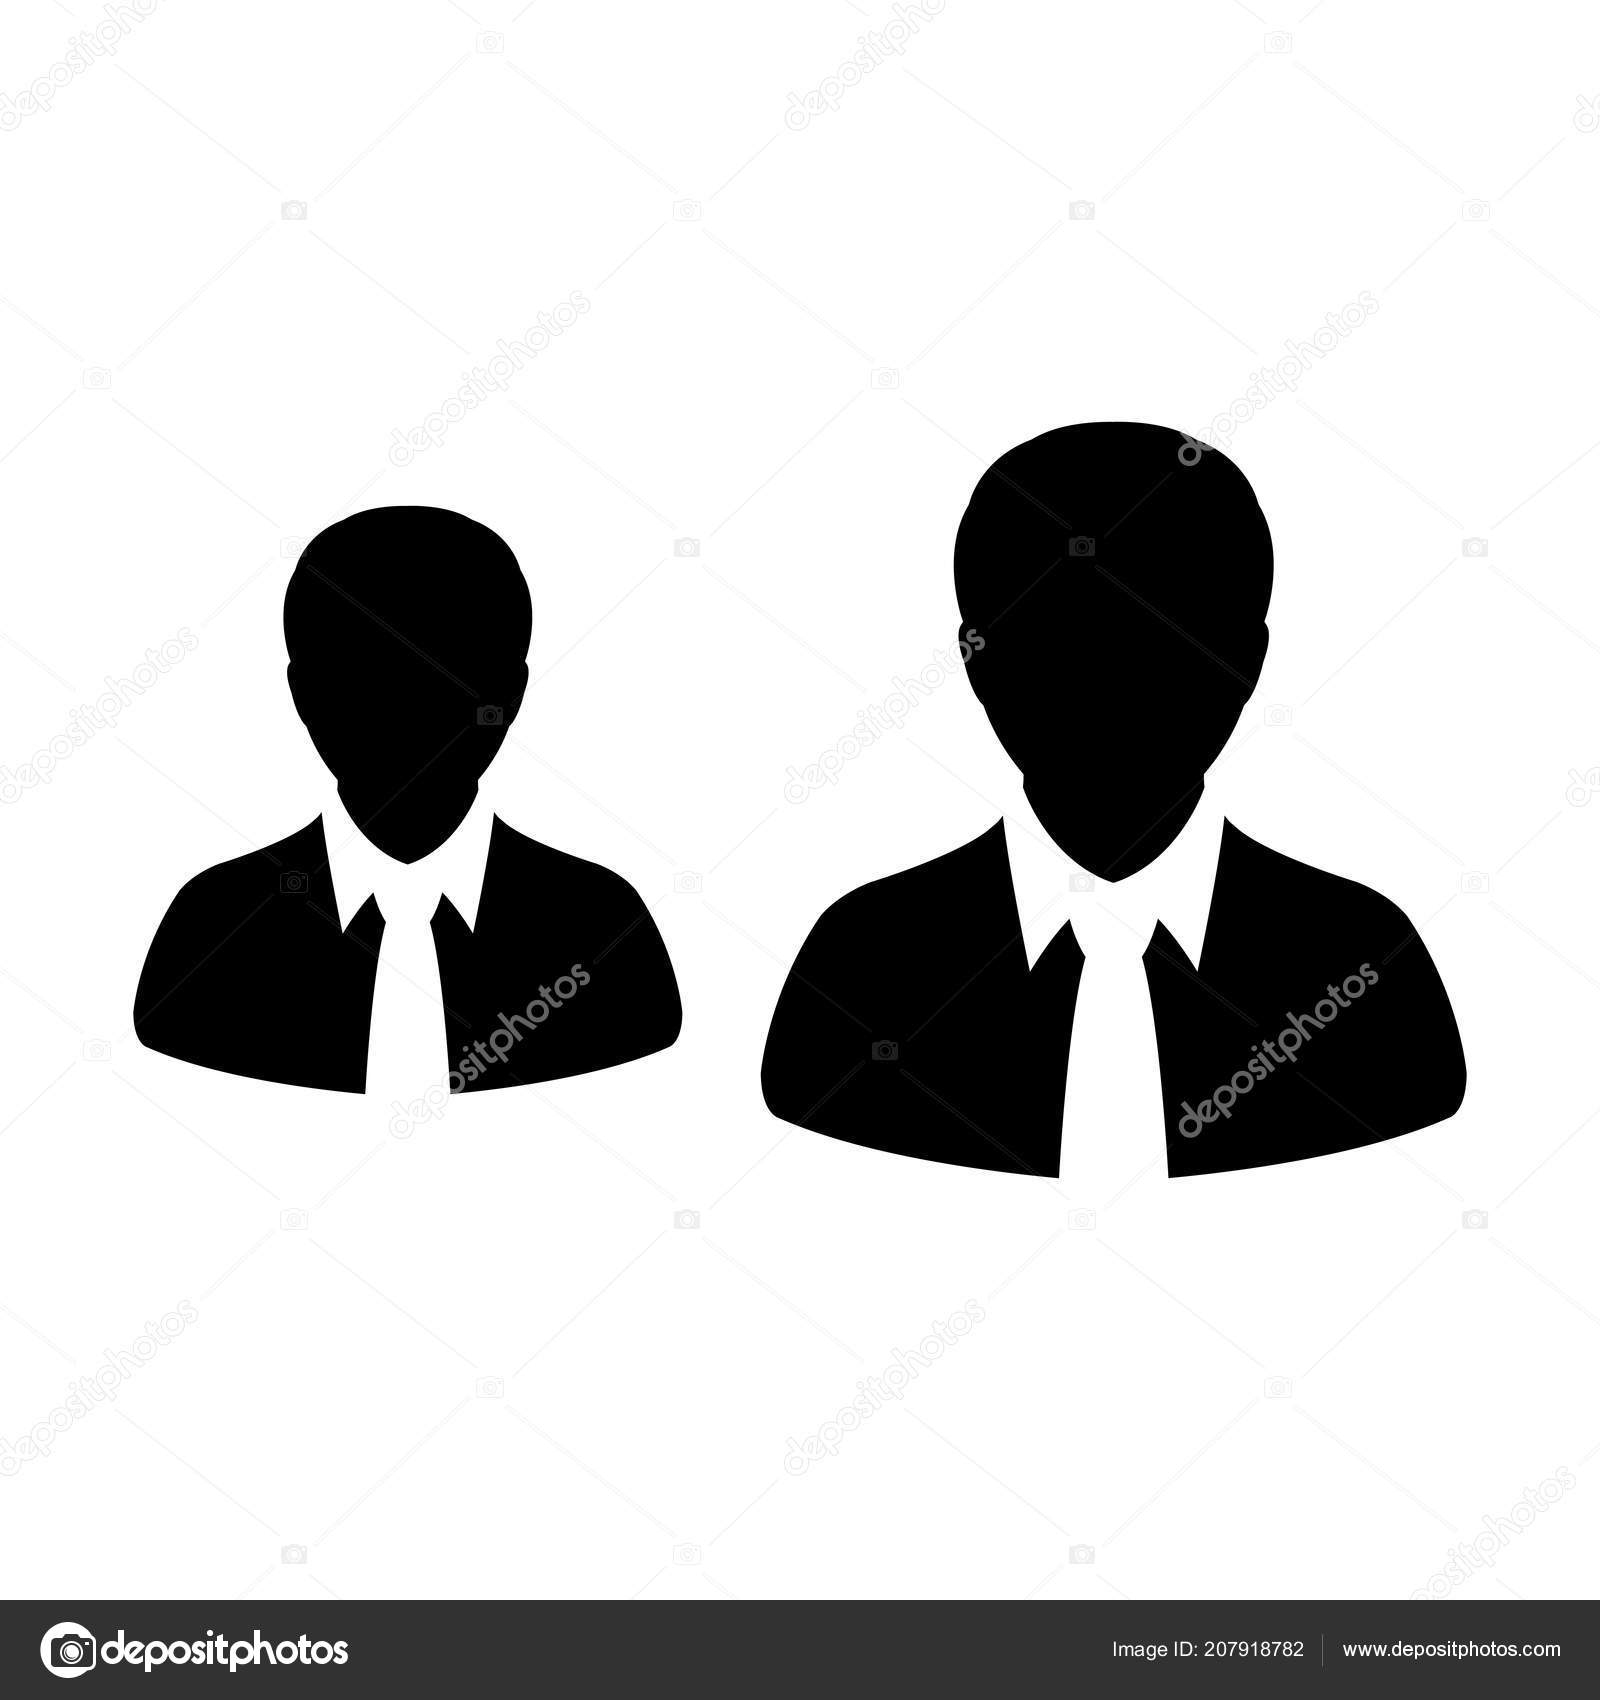 Team Icon Vector Male Group Persons Symbol Avatar Business